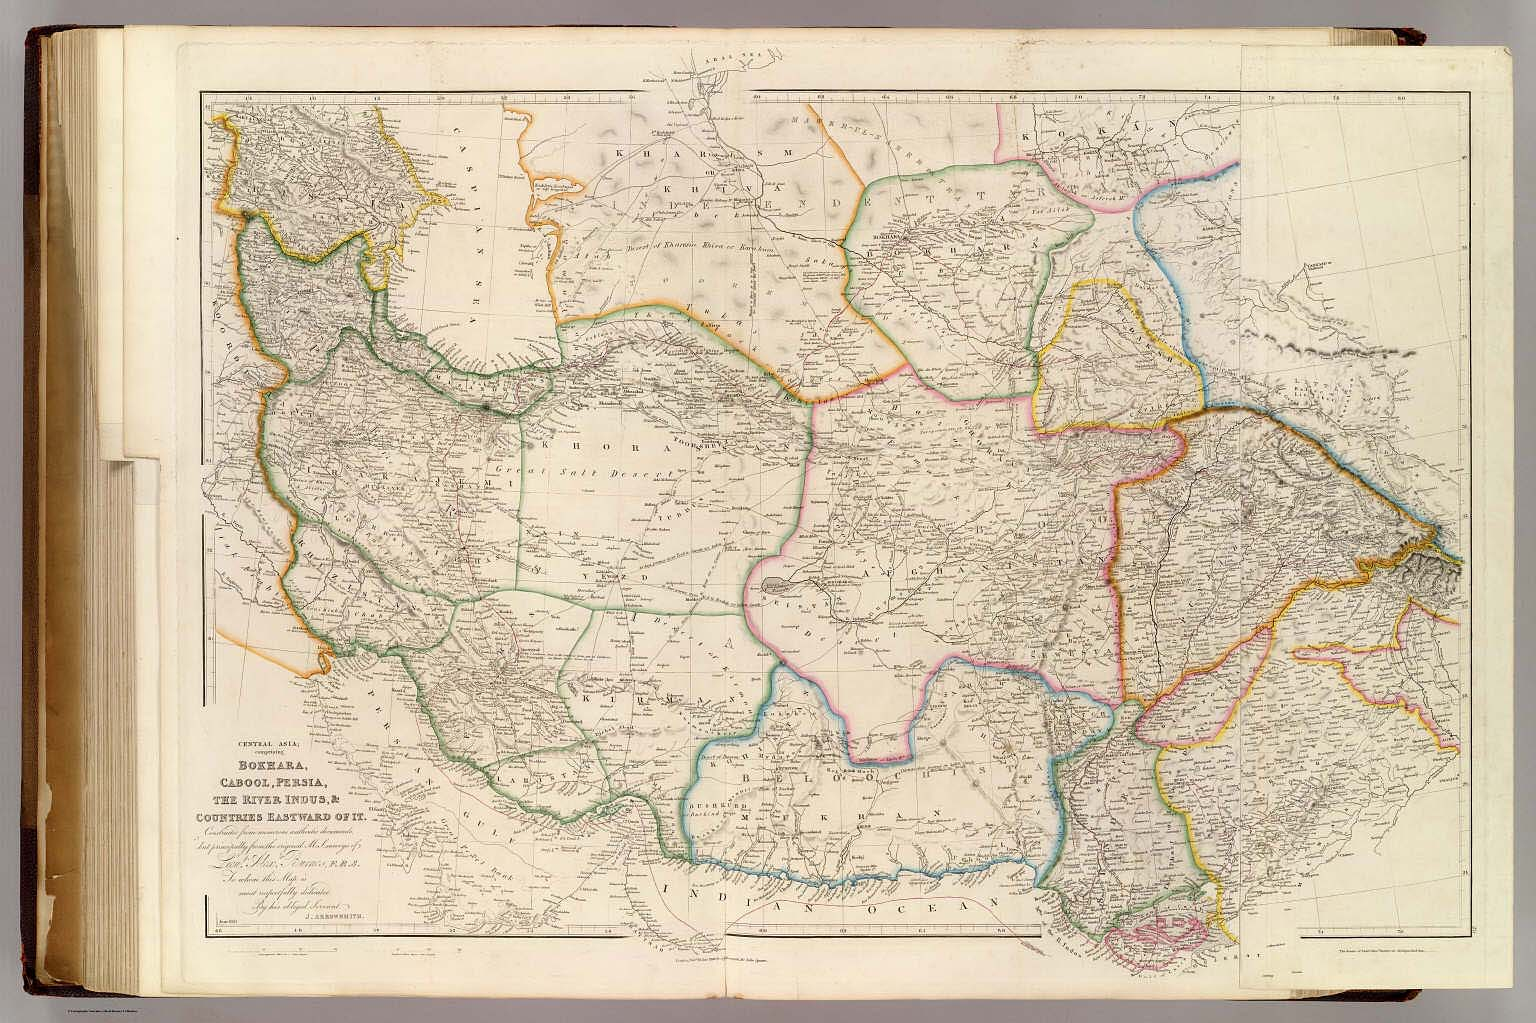 Central Asia. - David Rumsey Historical Map Collection